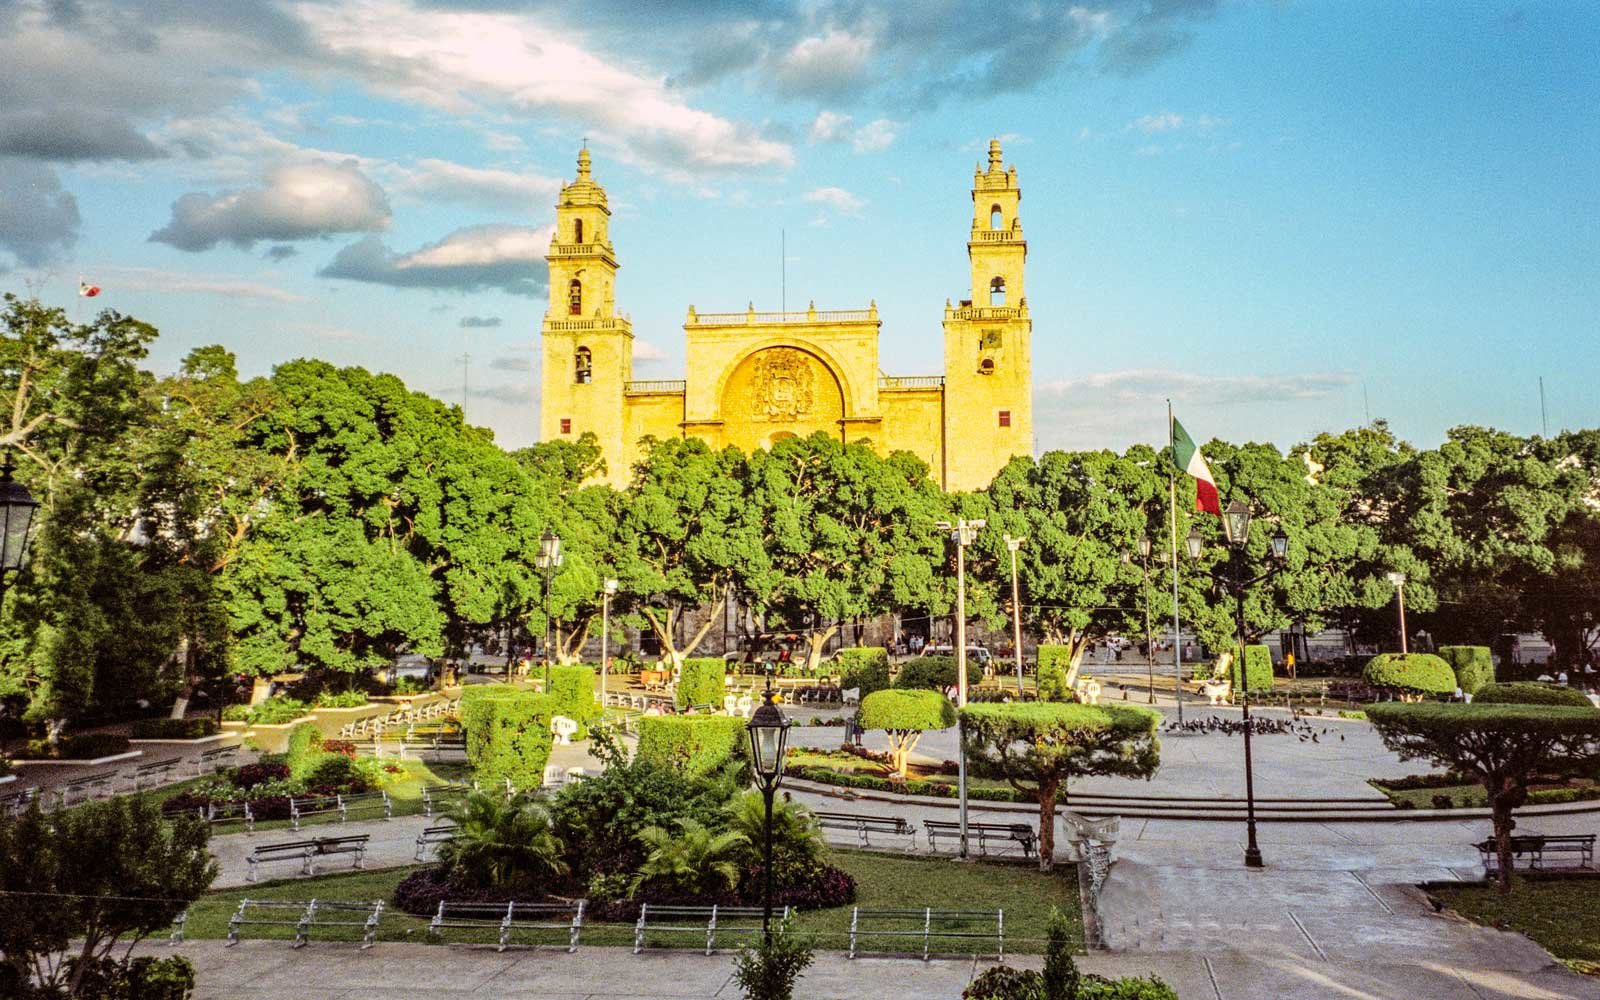 Mérida is the capital and largest city of the Mexican state of Yucatán as well as the largest city of the Yucatán Peninsula.